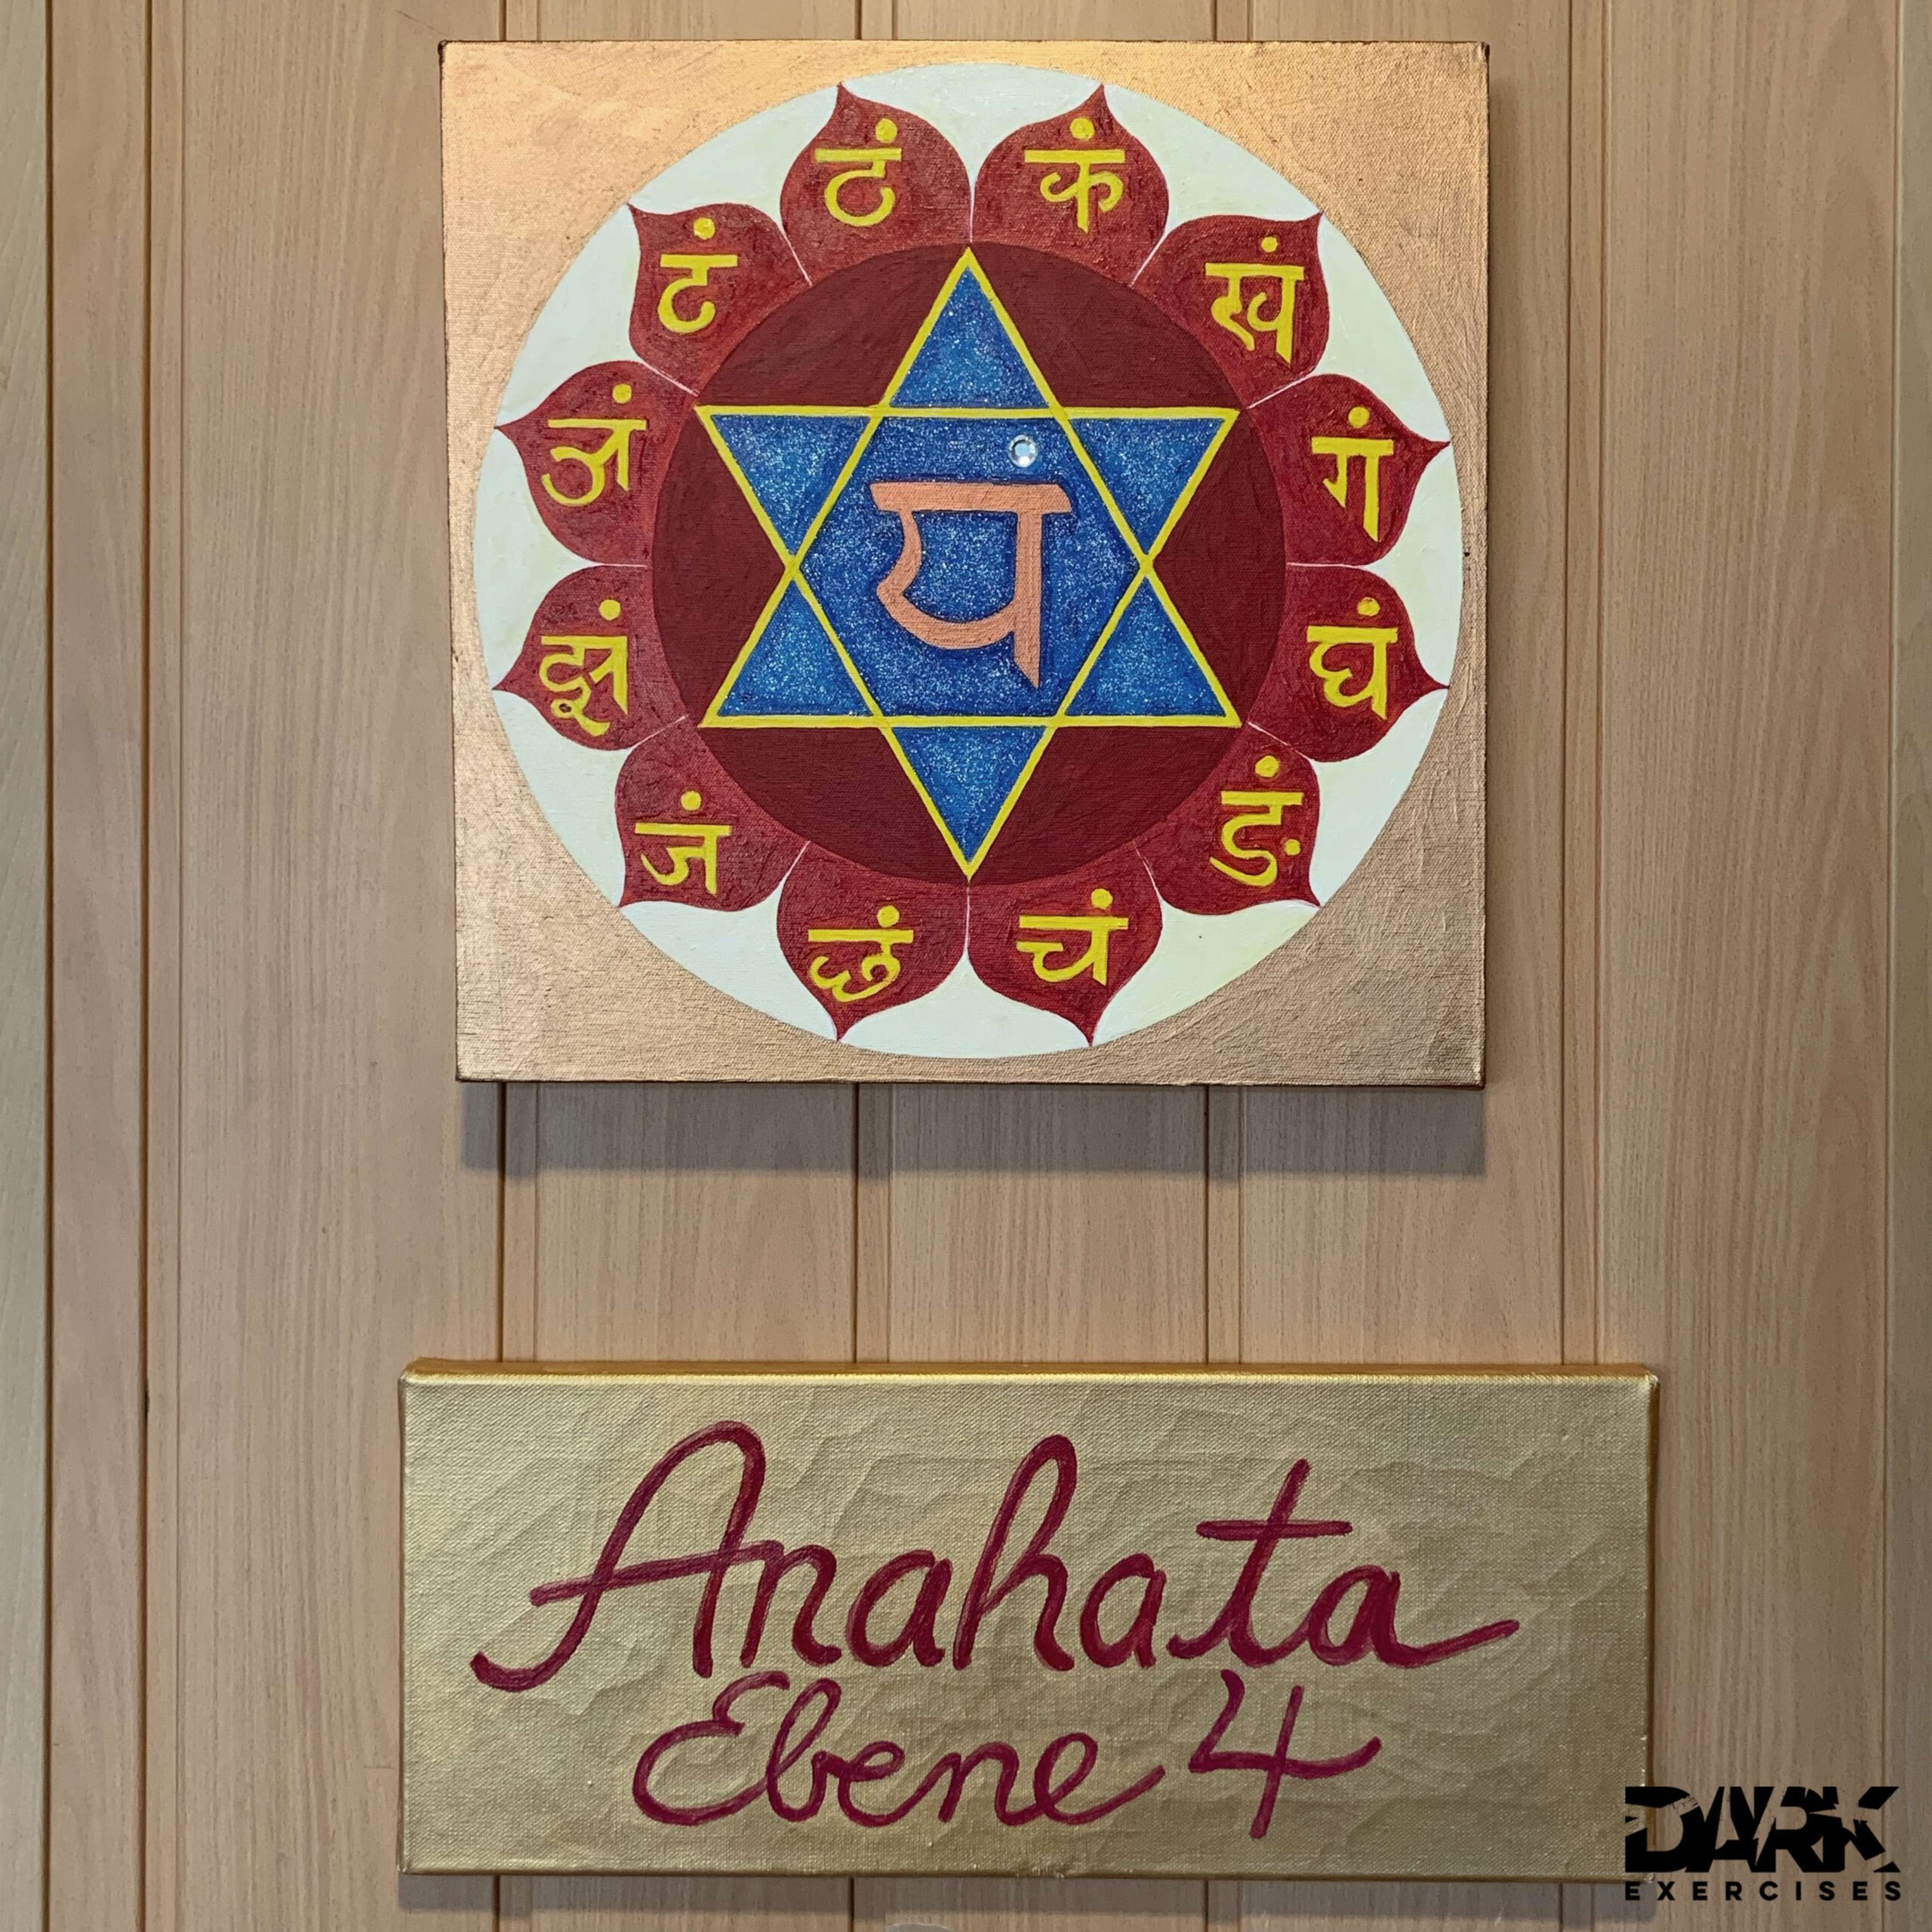 The Anahata floor, the fourth floor of the chakra pyramid, my domicile during the training